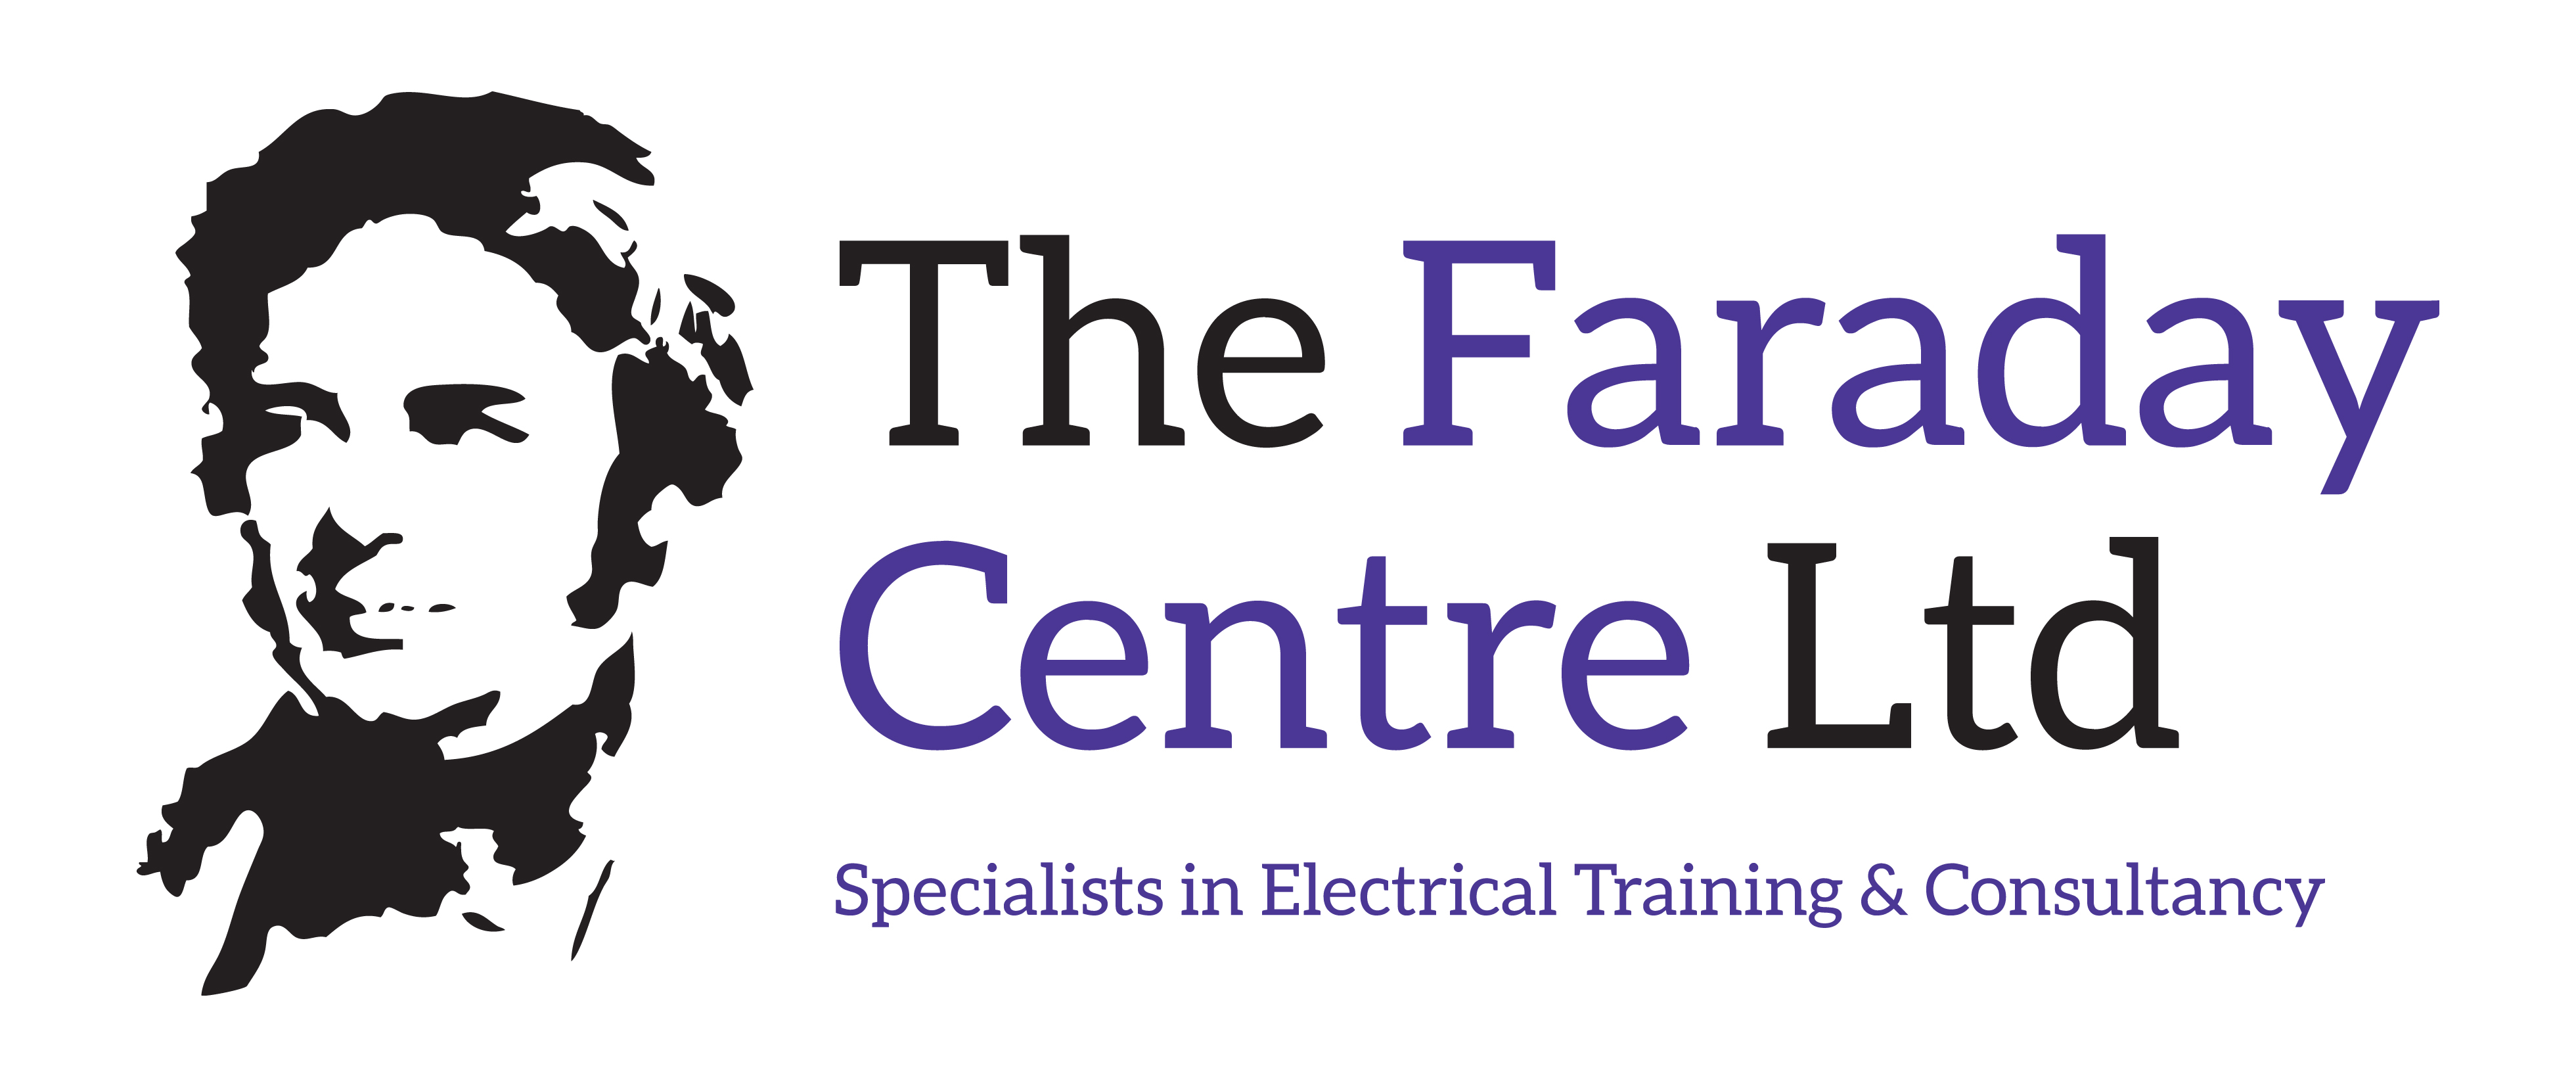 P1 - Protection of Electrical Power Systems - Faraday